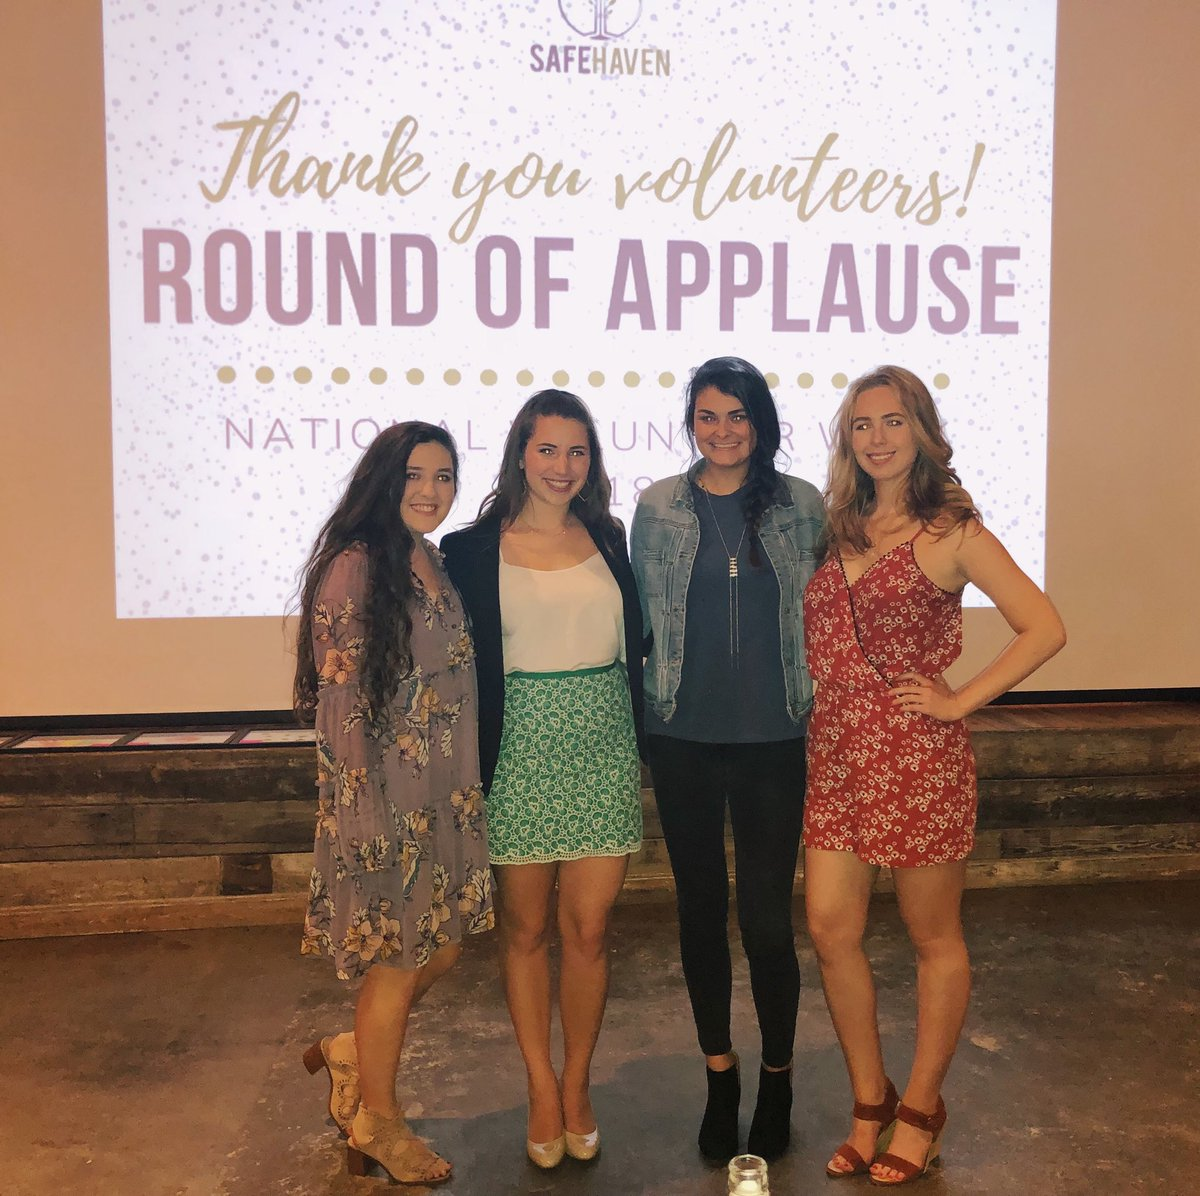 """Yesterday some of our sisters attended """"A Round of Applause Volunteer Appreciation Social"""" at our local shelter for women and children affected by domestic violence, SafeHaven. Let's put an END to domestic violence.  @AlphaChiOmegaHQ #NationalVolunteerWeek2018 <br>http://pic.twitter.com/QikBqbPO3h"""